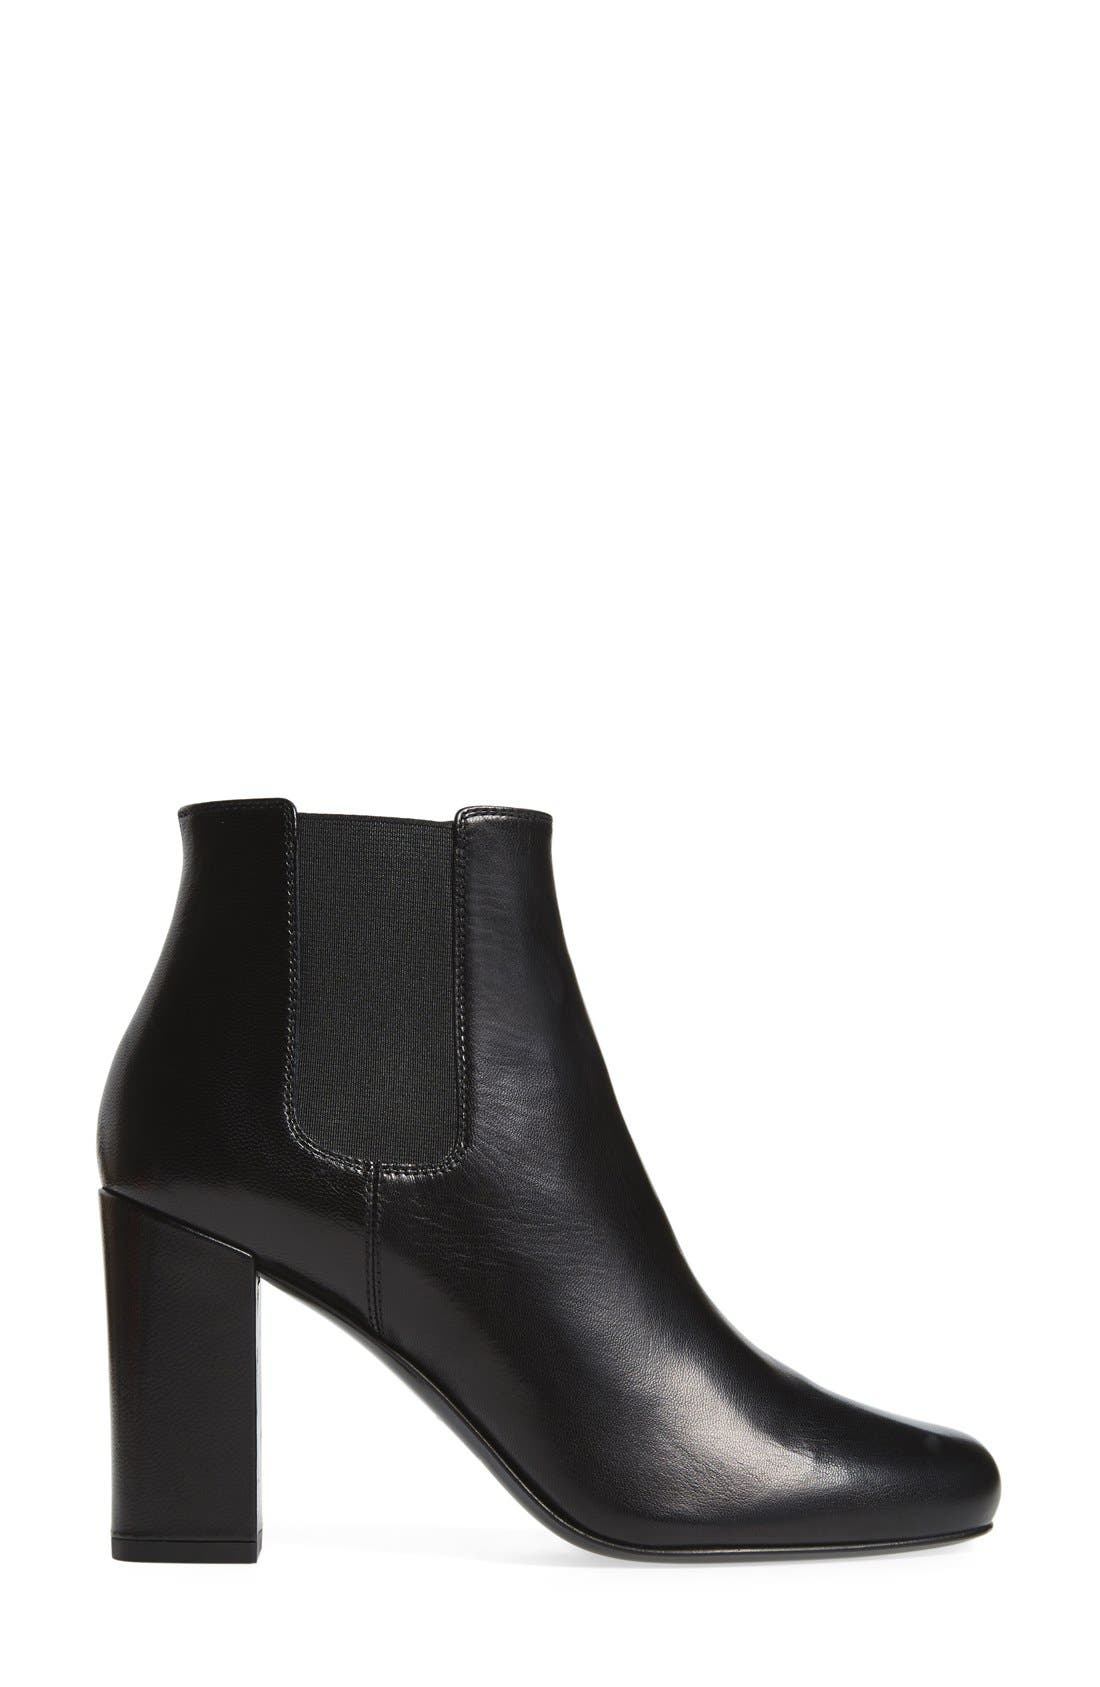 'Babies' Block Heel Chelsea Boot,                             Alternate thumbnail 4, color,                             Black Leather